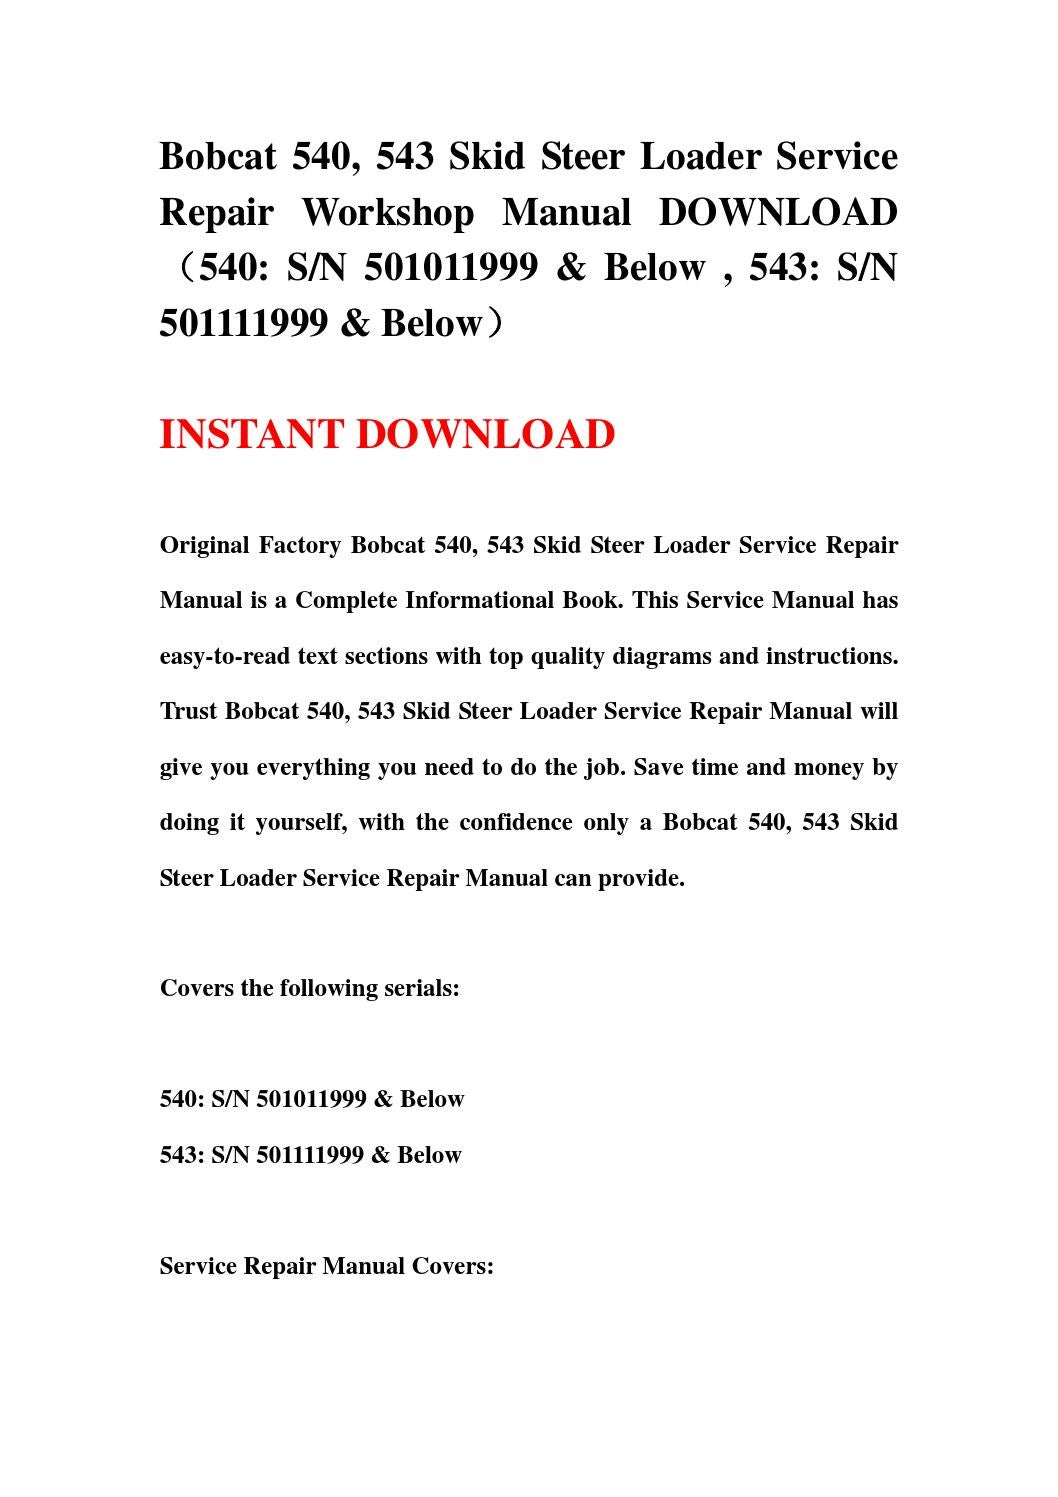 Bobcat 540 543 Skid Steer Loader Service Repair Workshop Manual Download Sn 501011999 Below